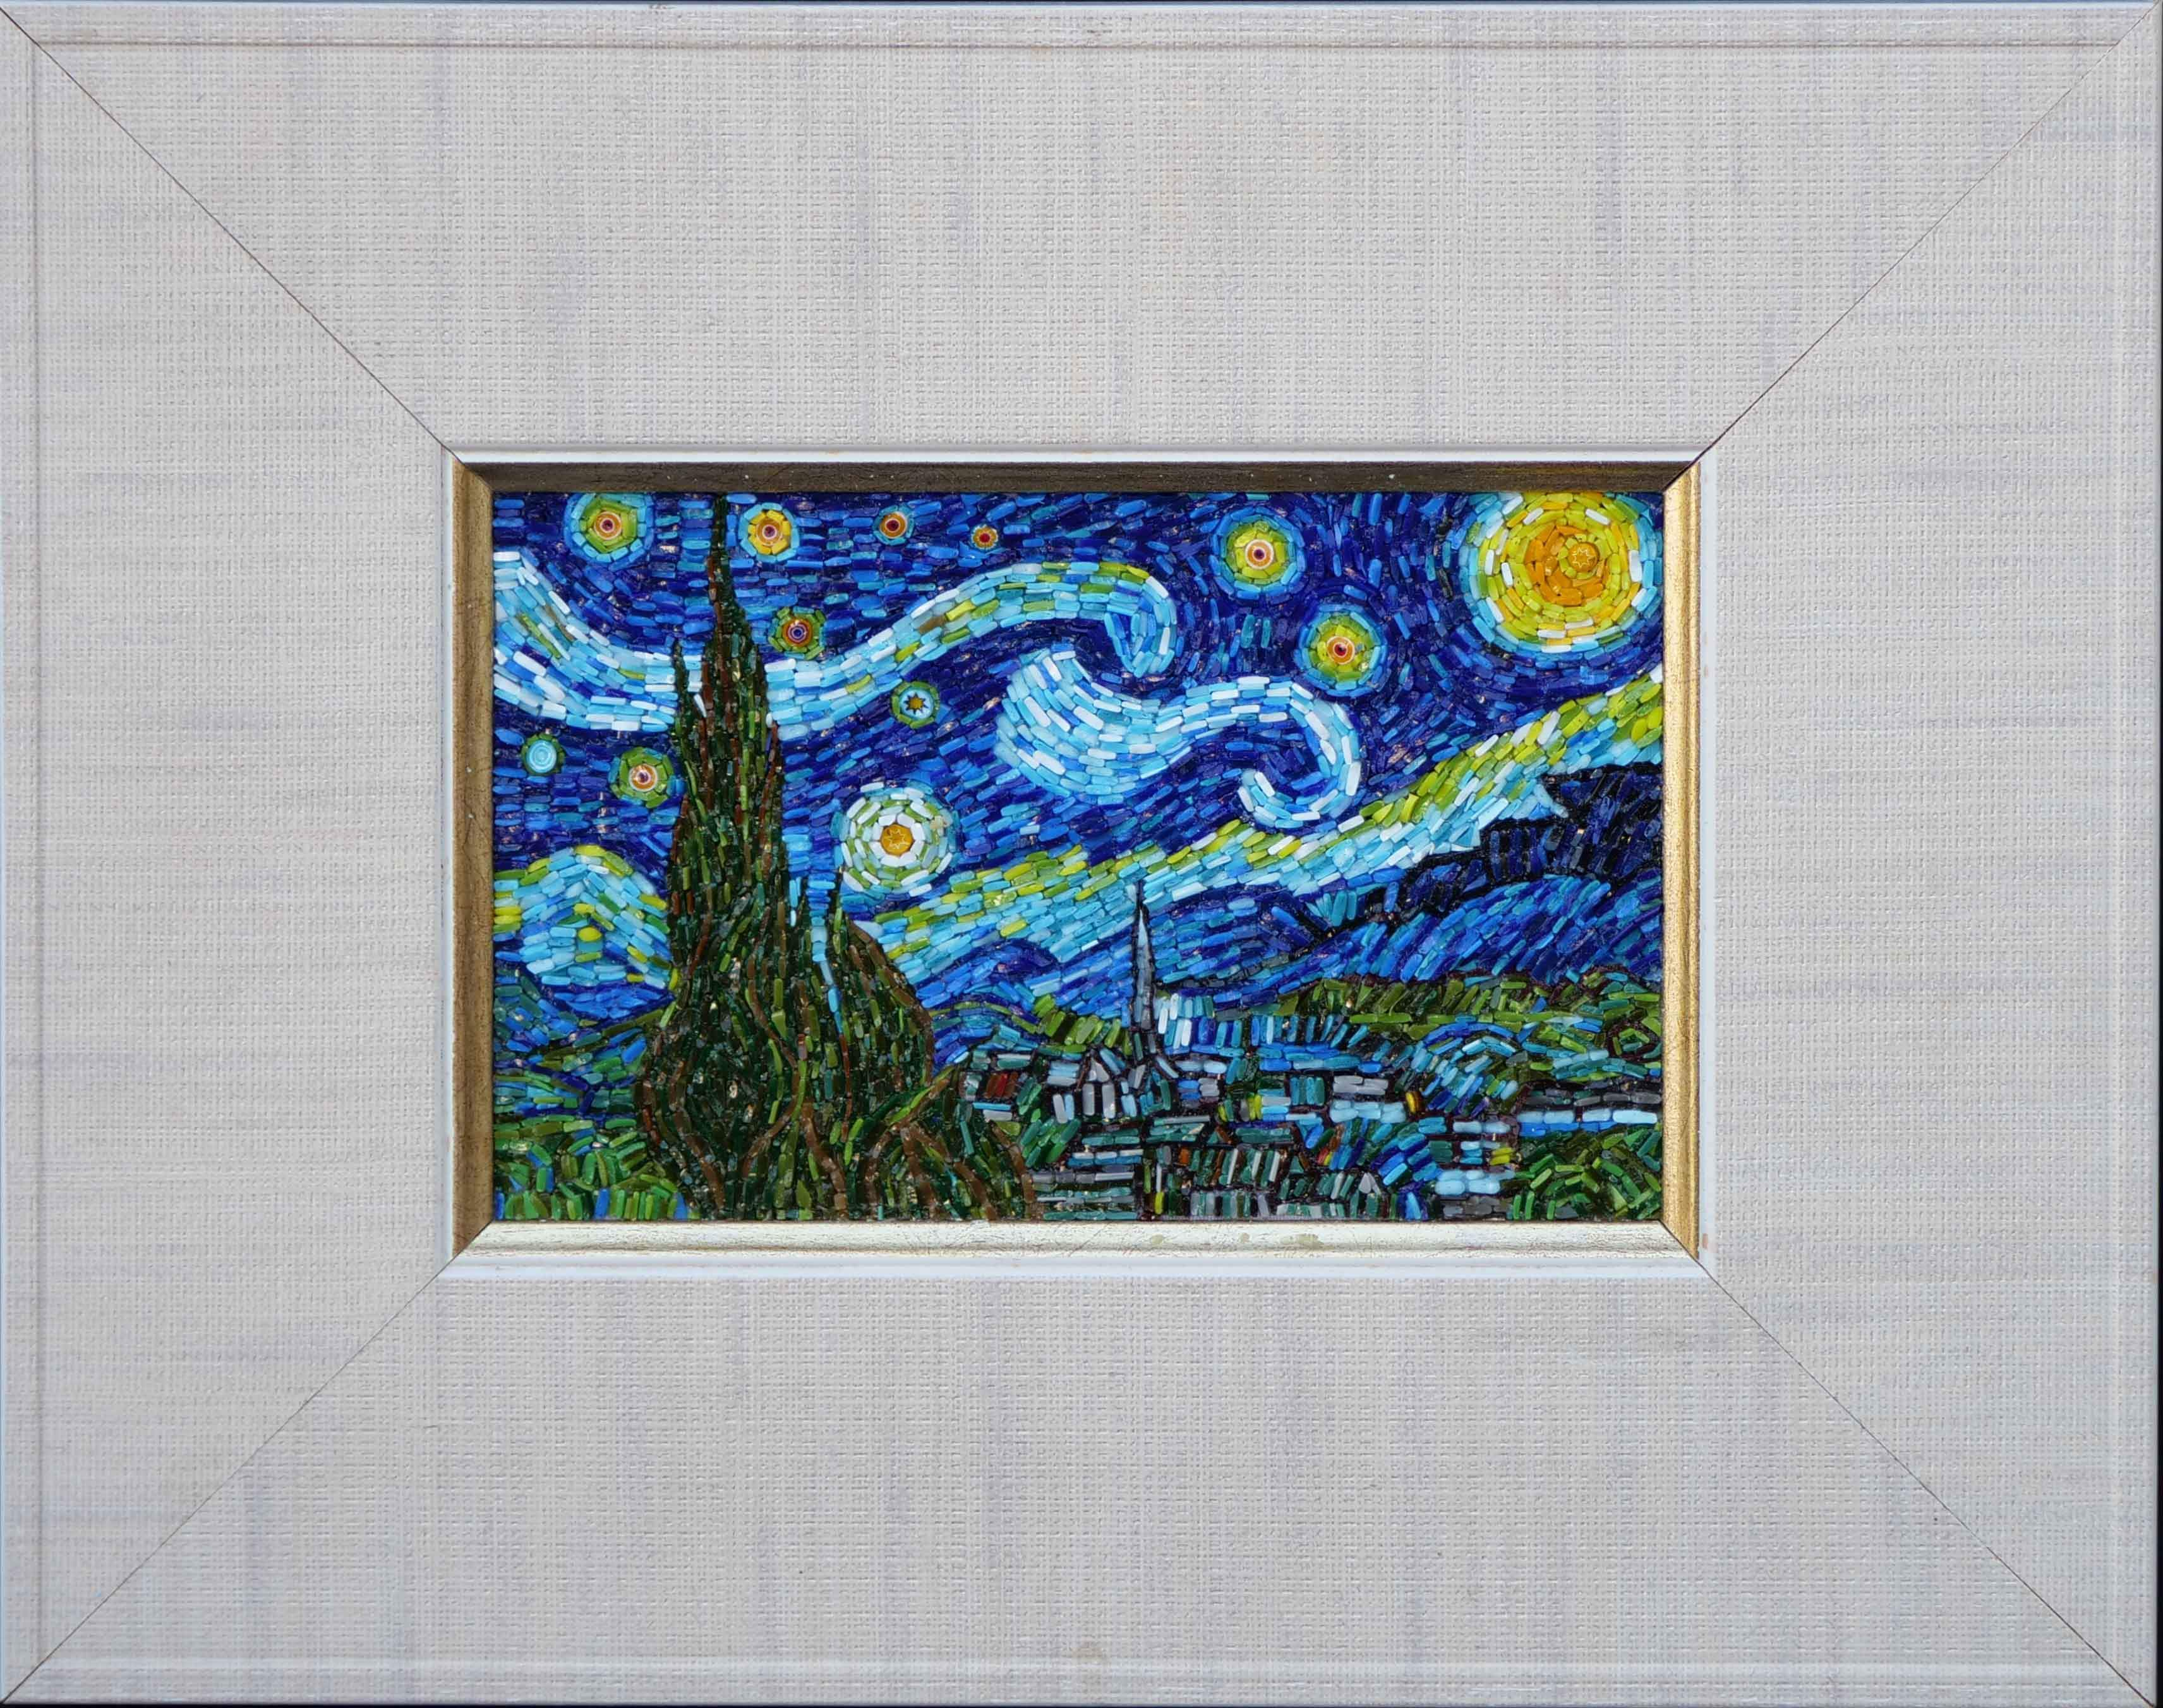 The Starry Night Mosaic Art Reproduction Pic